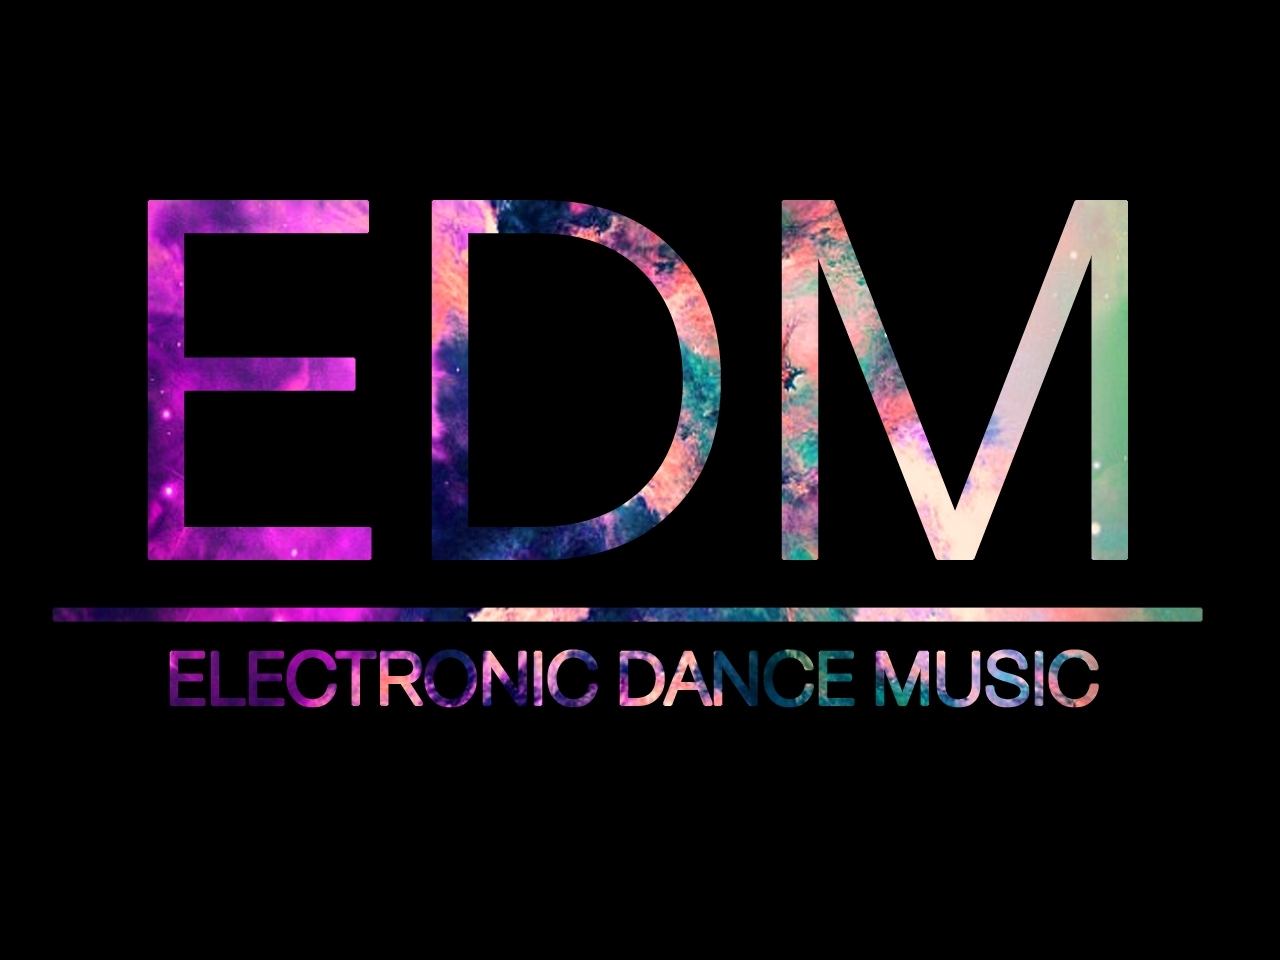 how much do you know about electronic dance music?